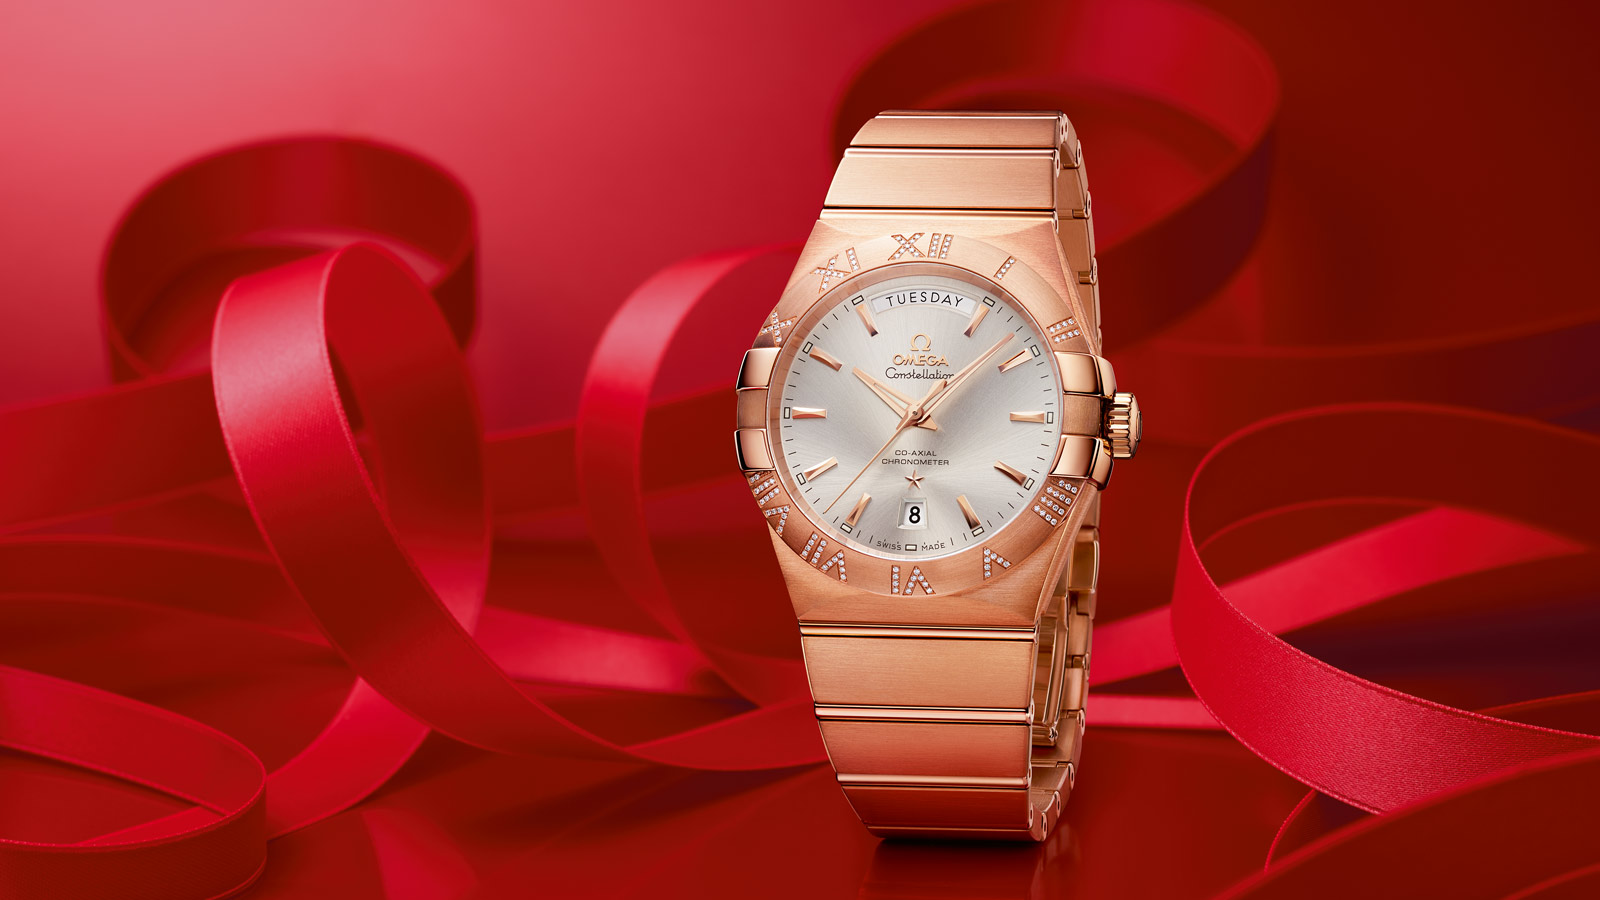 Constellation コンステレーション Constellation Omega Co‑Axial Day‑Date 38mm - 123.55.38.22.02.001 - ビュー 1